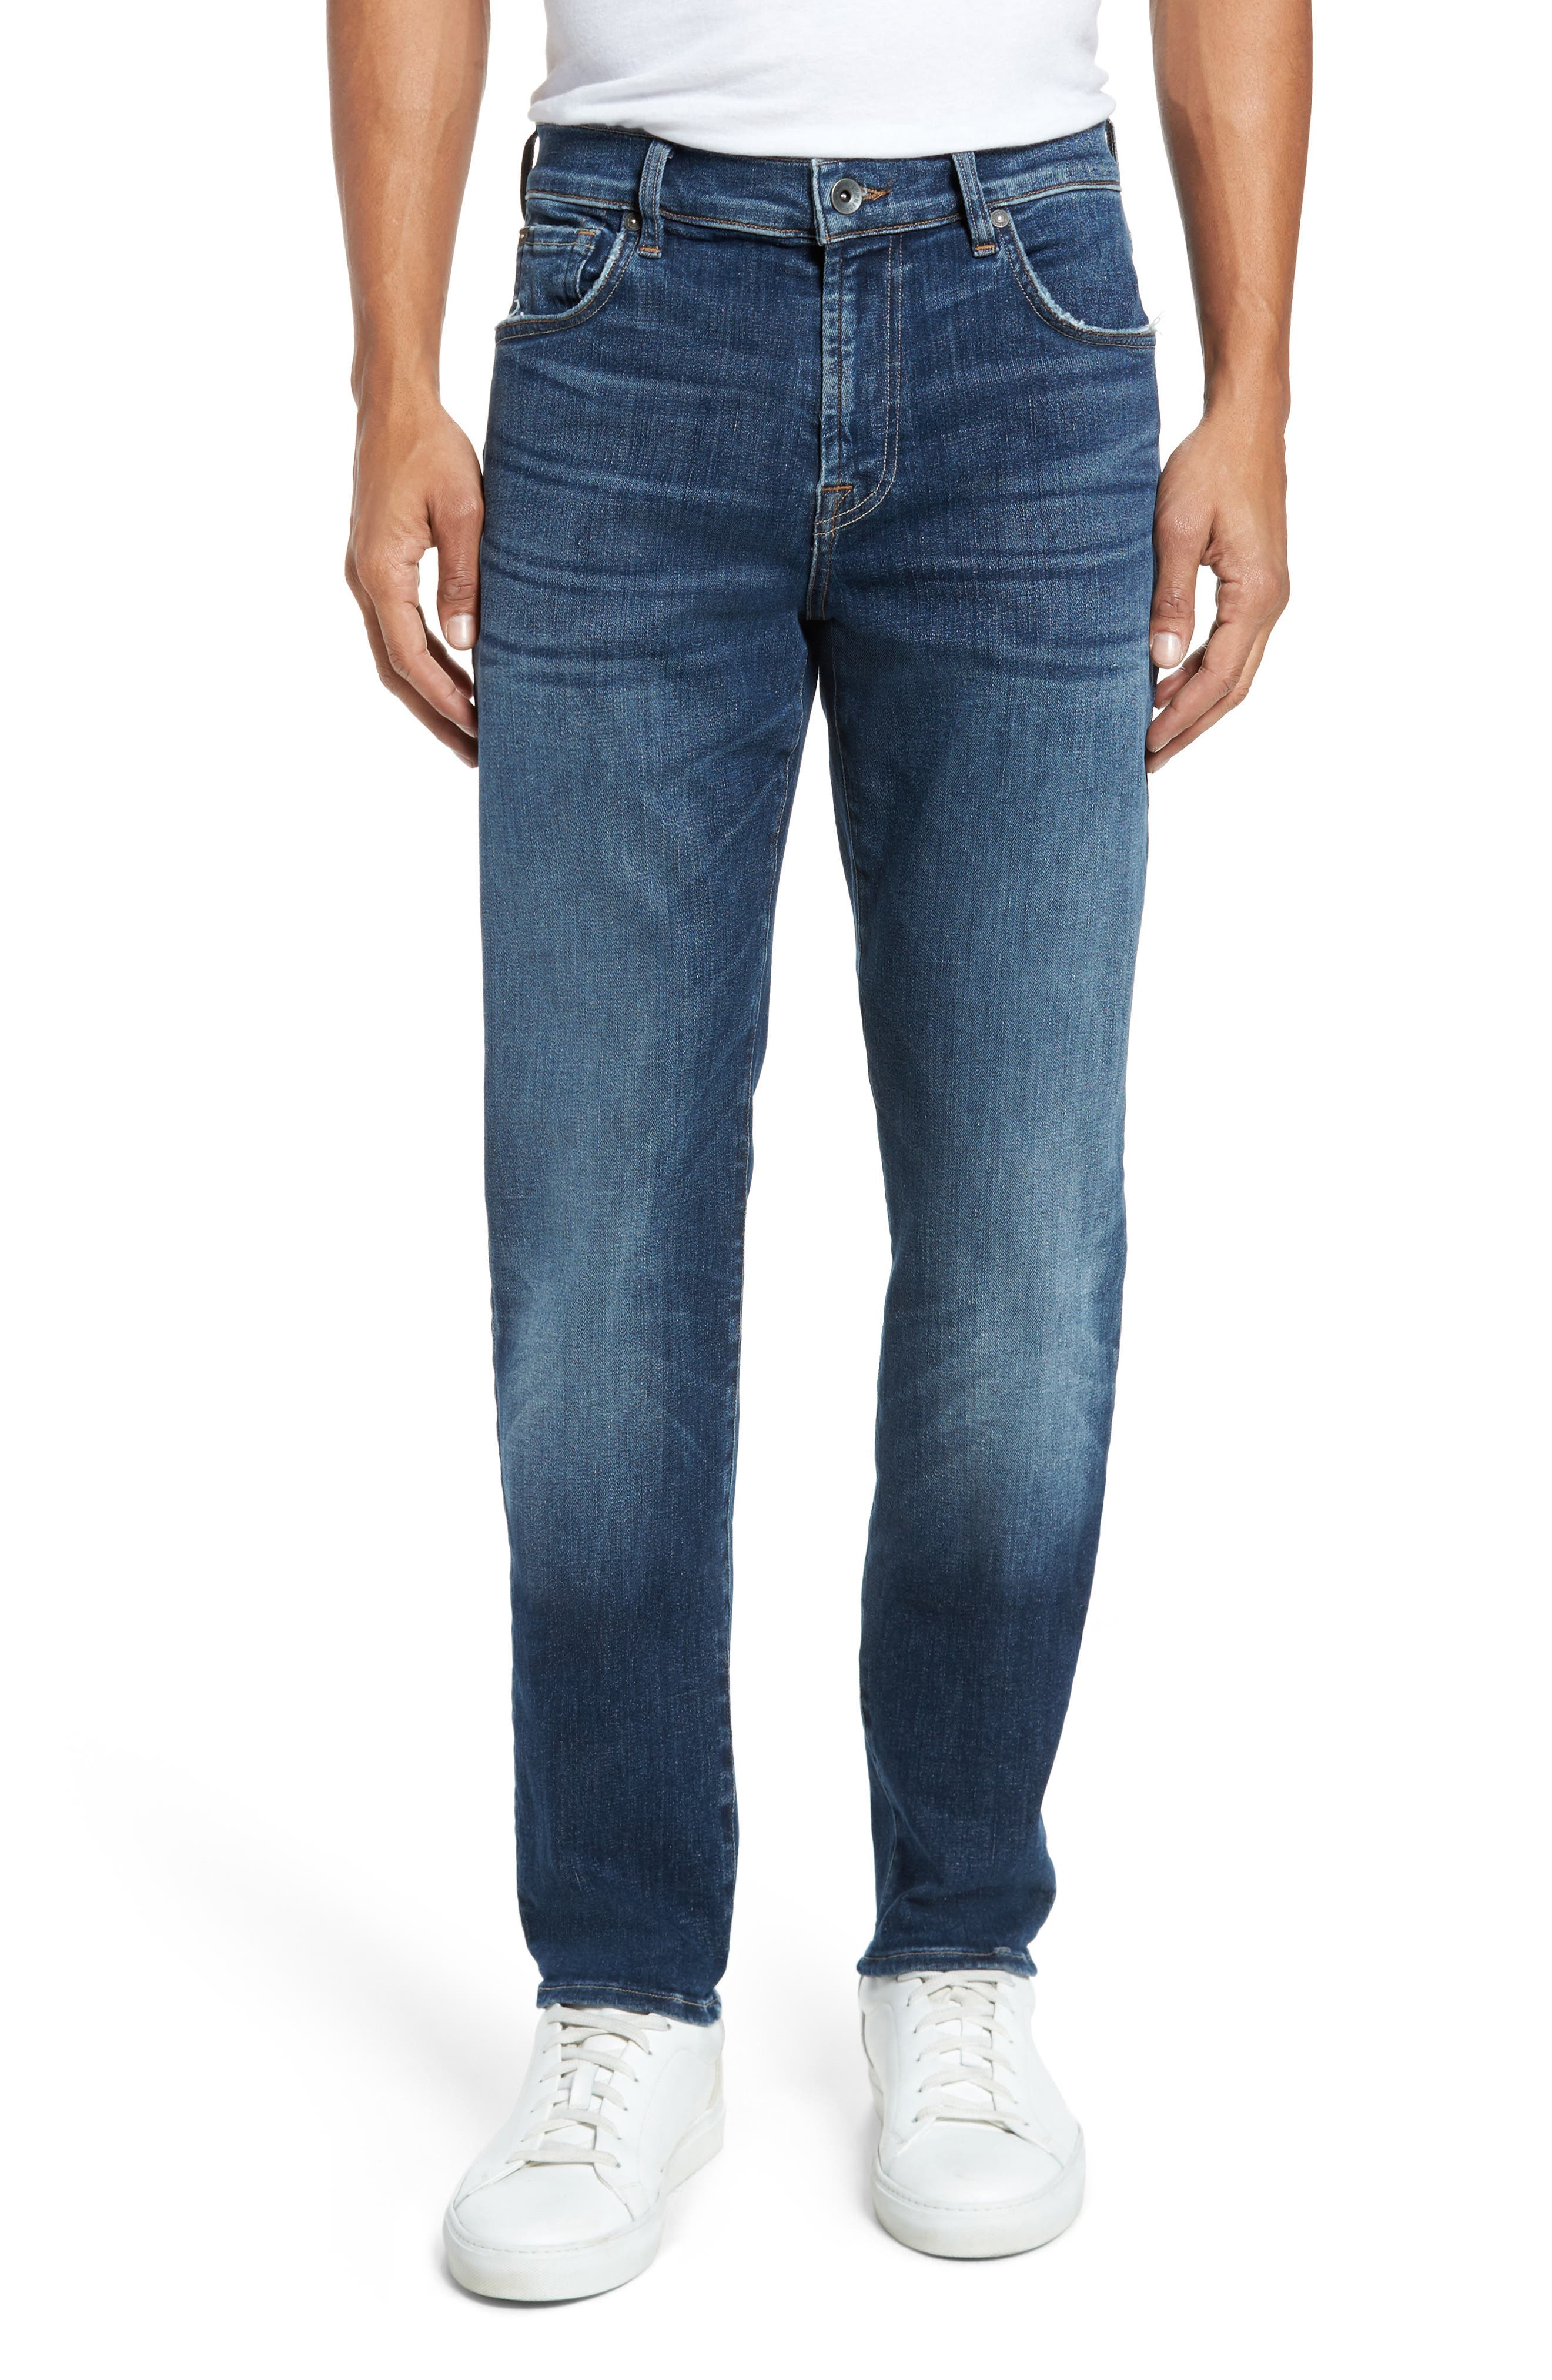 Adrien Slim Fit Jeans,                         Main,                         color, Authentic Euphoria